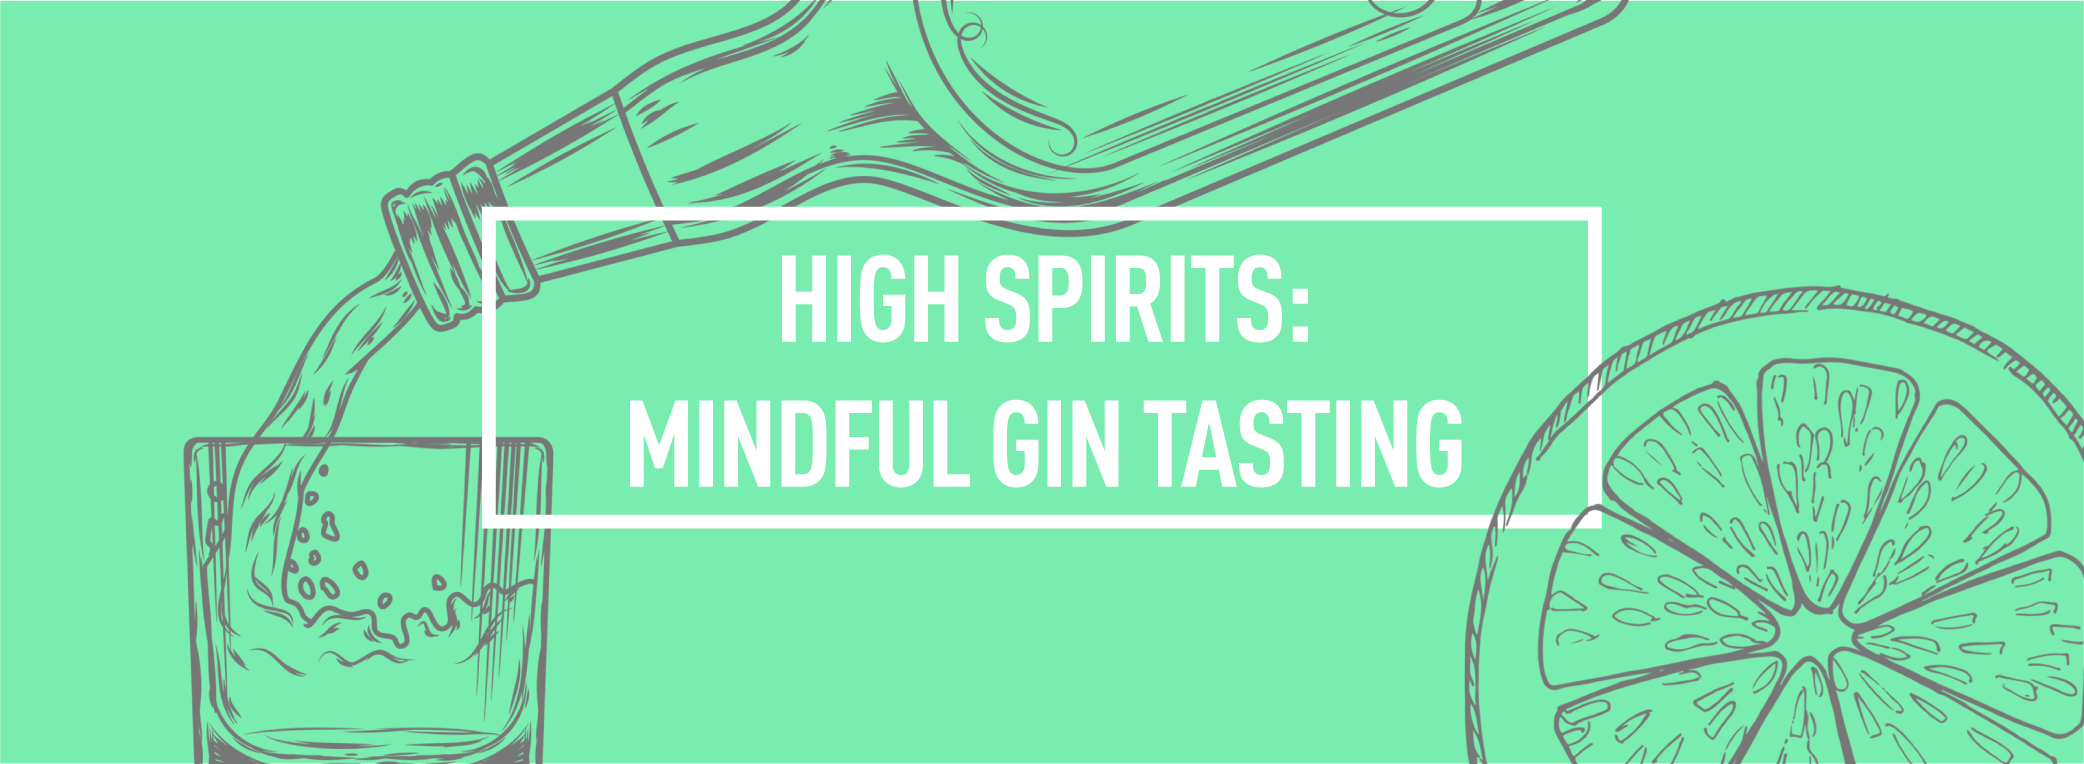 HIGH SPIRITS MINDFUL GIN TASTING_Webpage Header